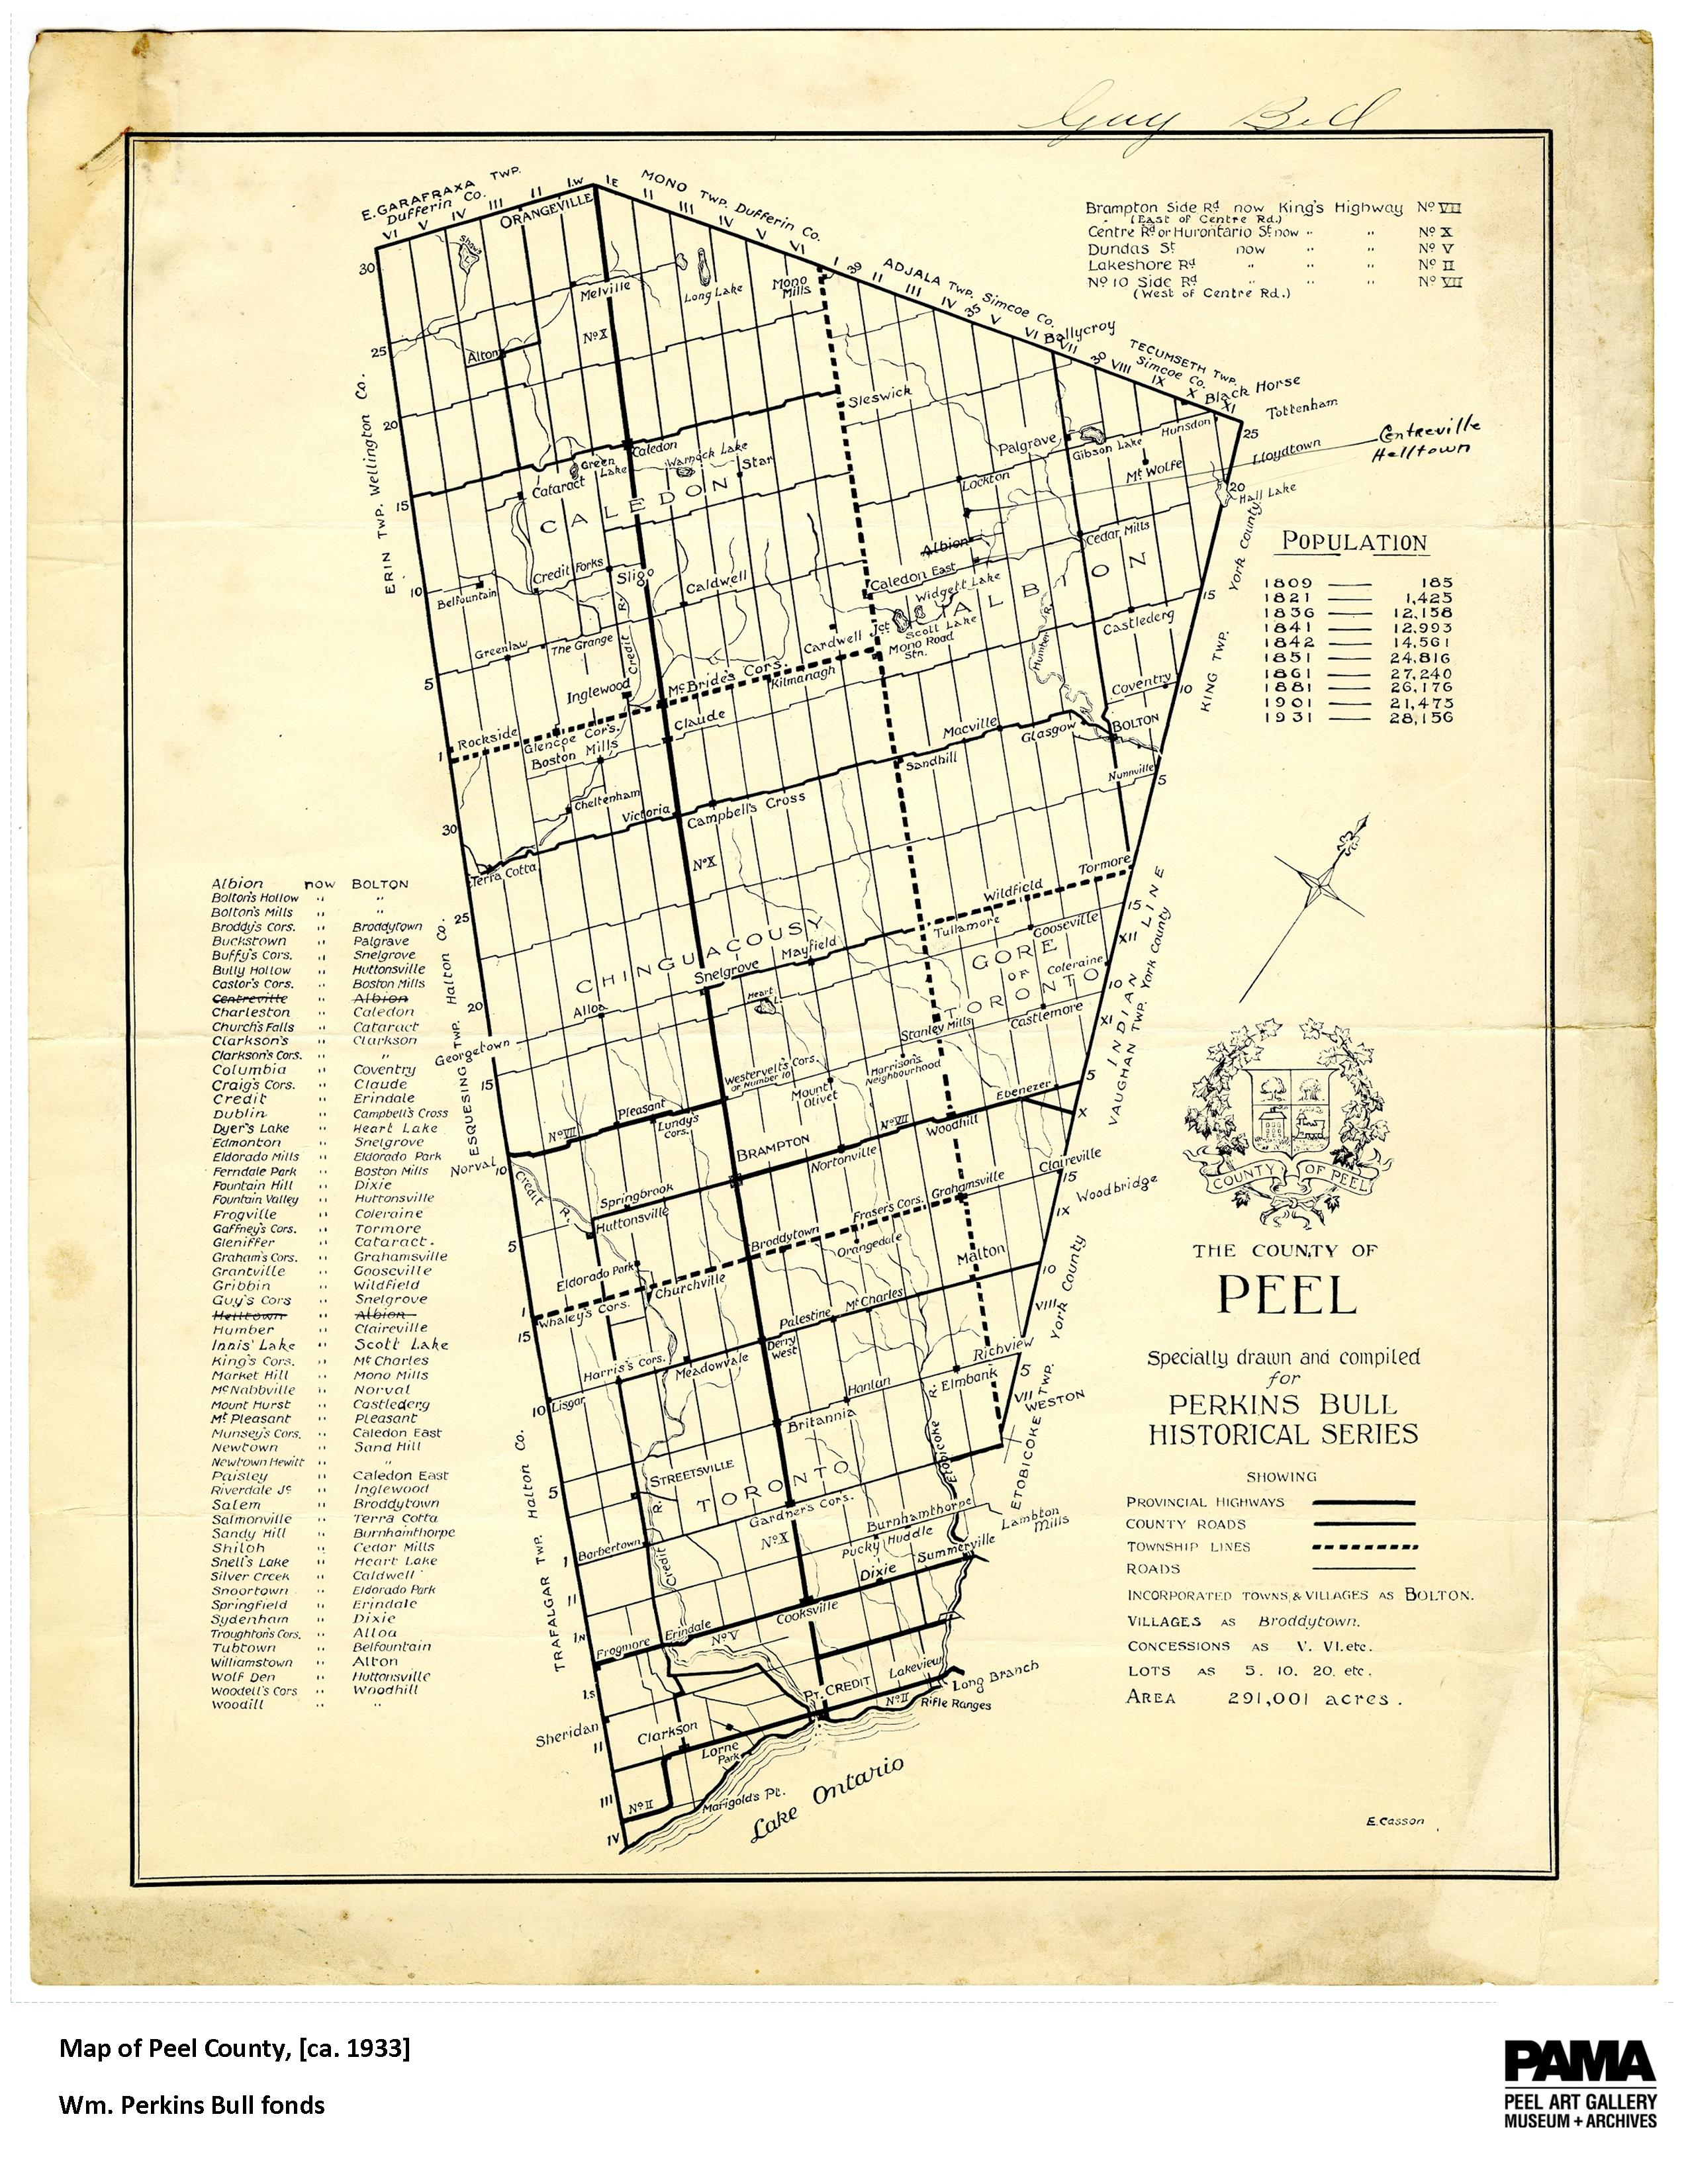 Map of Peel County, ca. 1933 (WP Bull fonds)